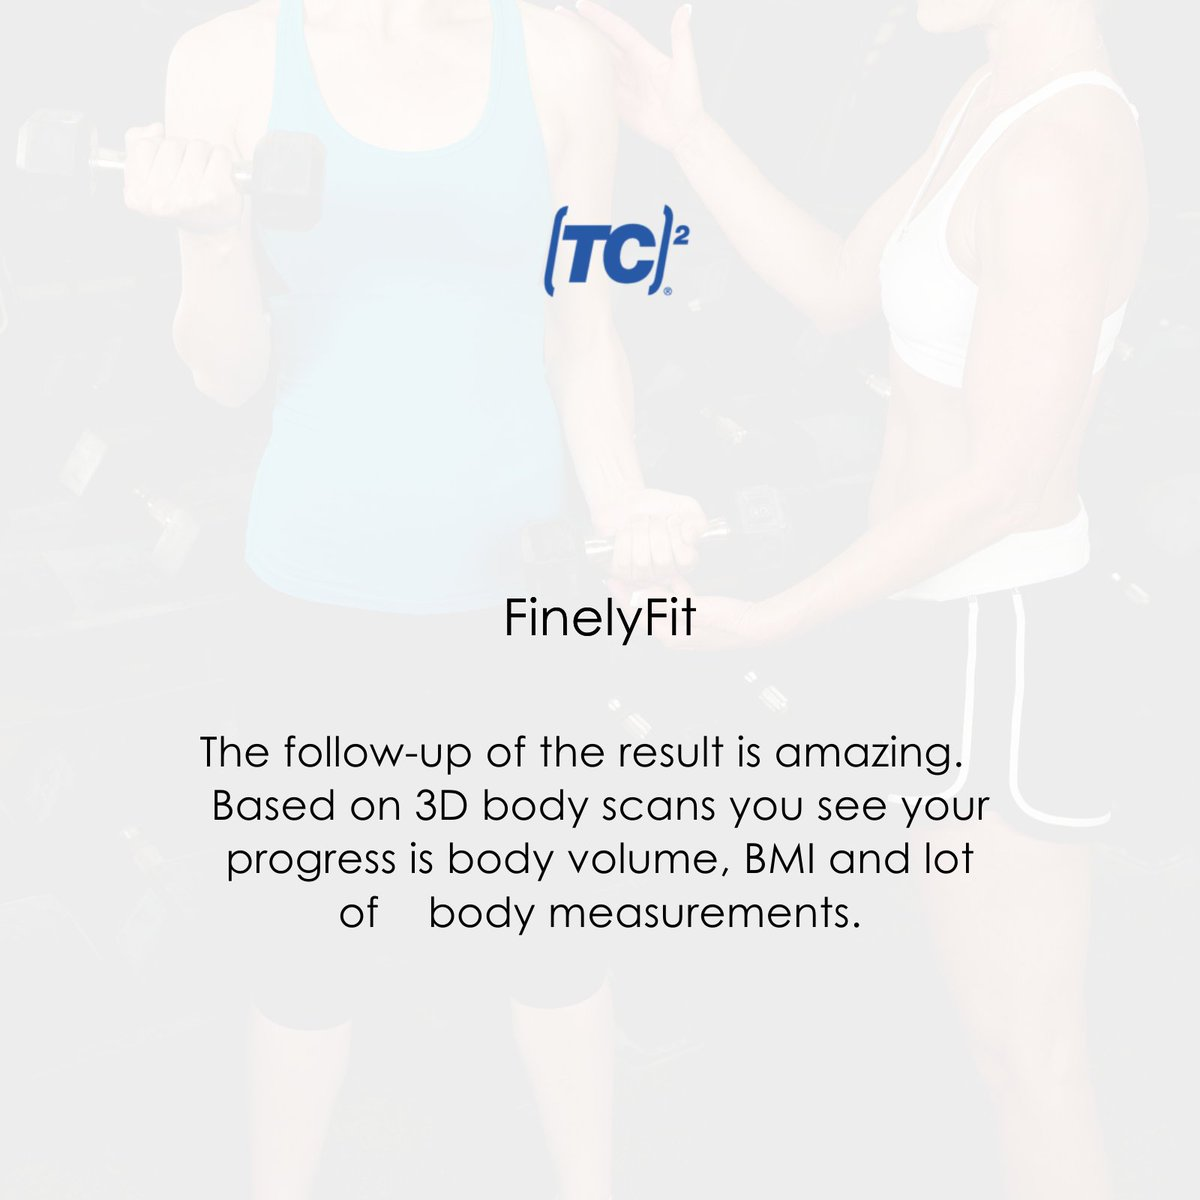 A quick scan with our body scanner >>  http://bit.ly/tc2finelyfit   #TC2 #OnlineServices #StayHome #StaySafe #LatestTechnology #TechTips #ModernTechnology #TechUpdate #TechPropic.twitter.com/c8UONCfOWG